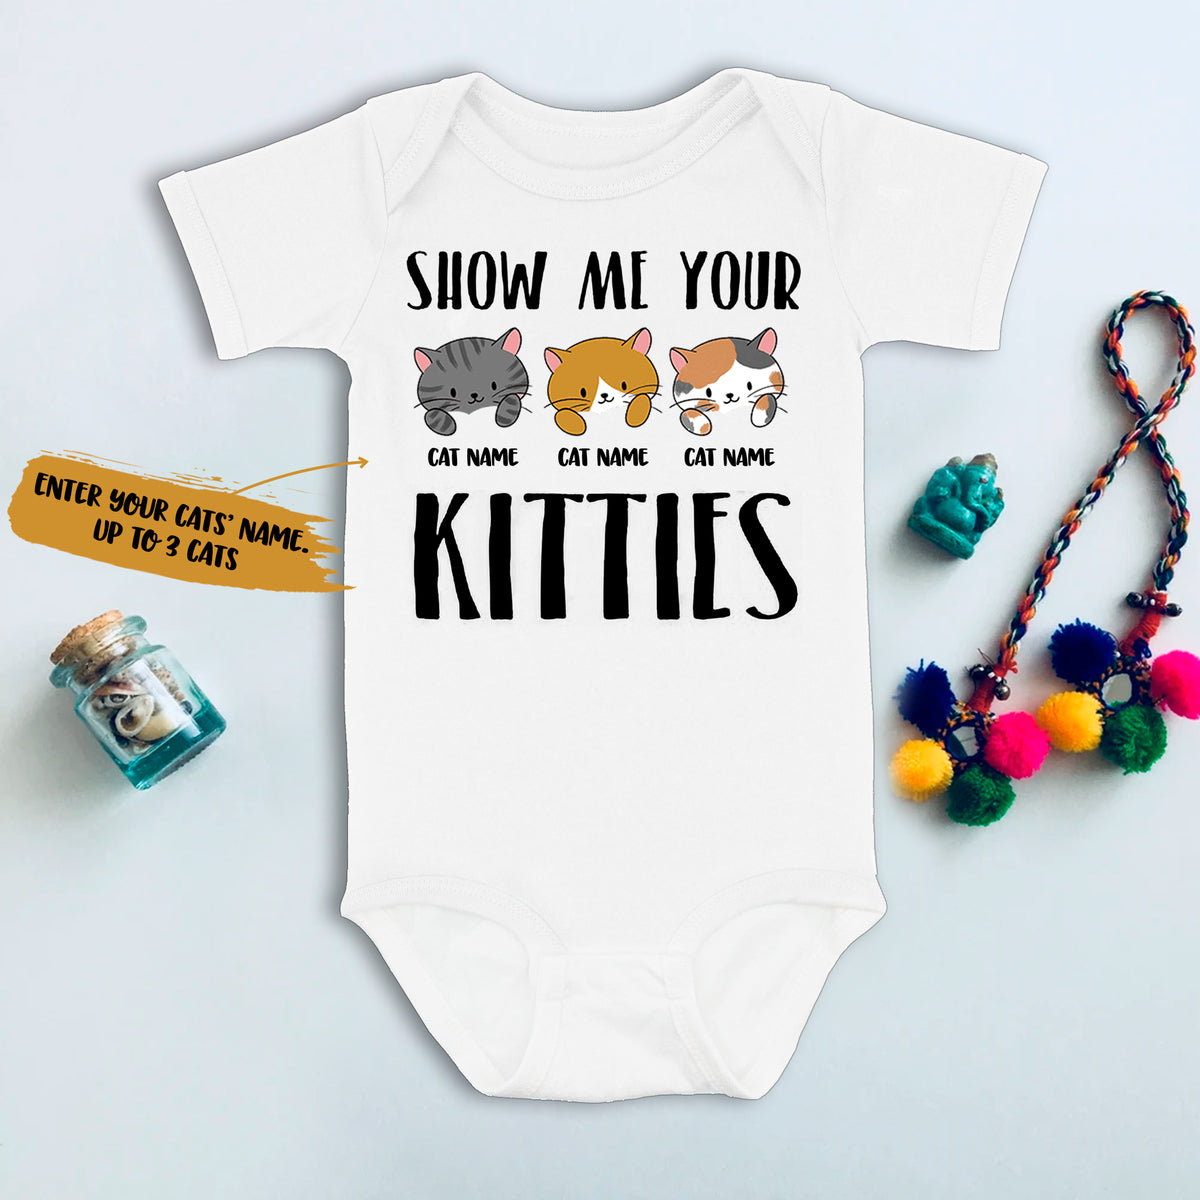 I Still Live with My Parents Onesie®, Funny Baby Onesie®,Baby Shower Gift Ideas, Baby Girl Clothes, Baby Boy Clothes, Funny Baby Clothes